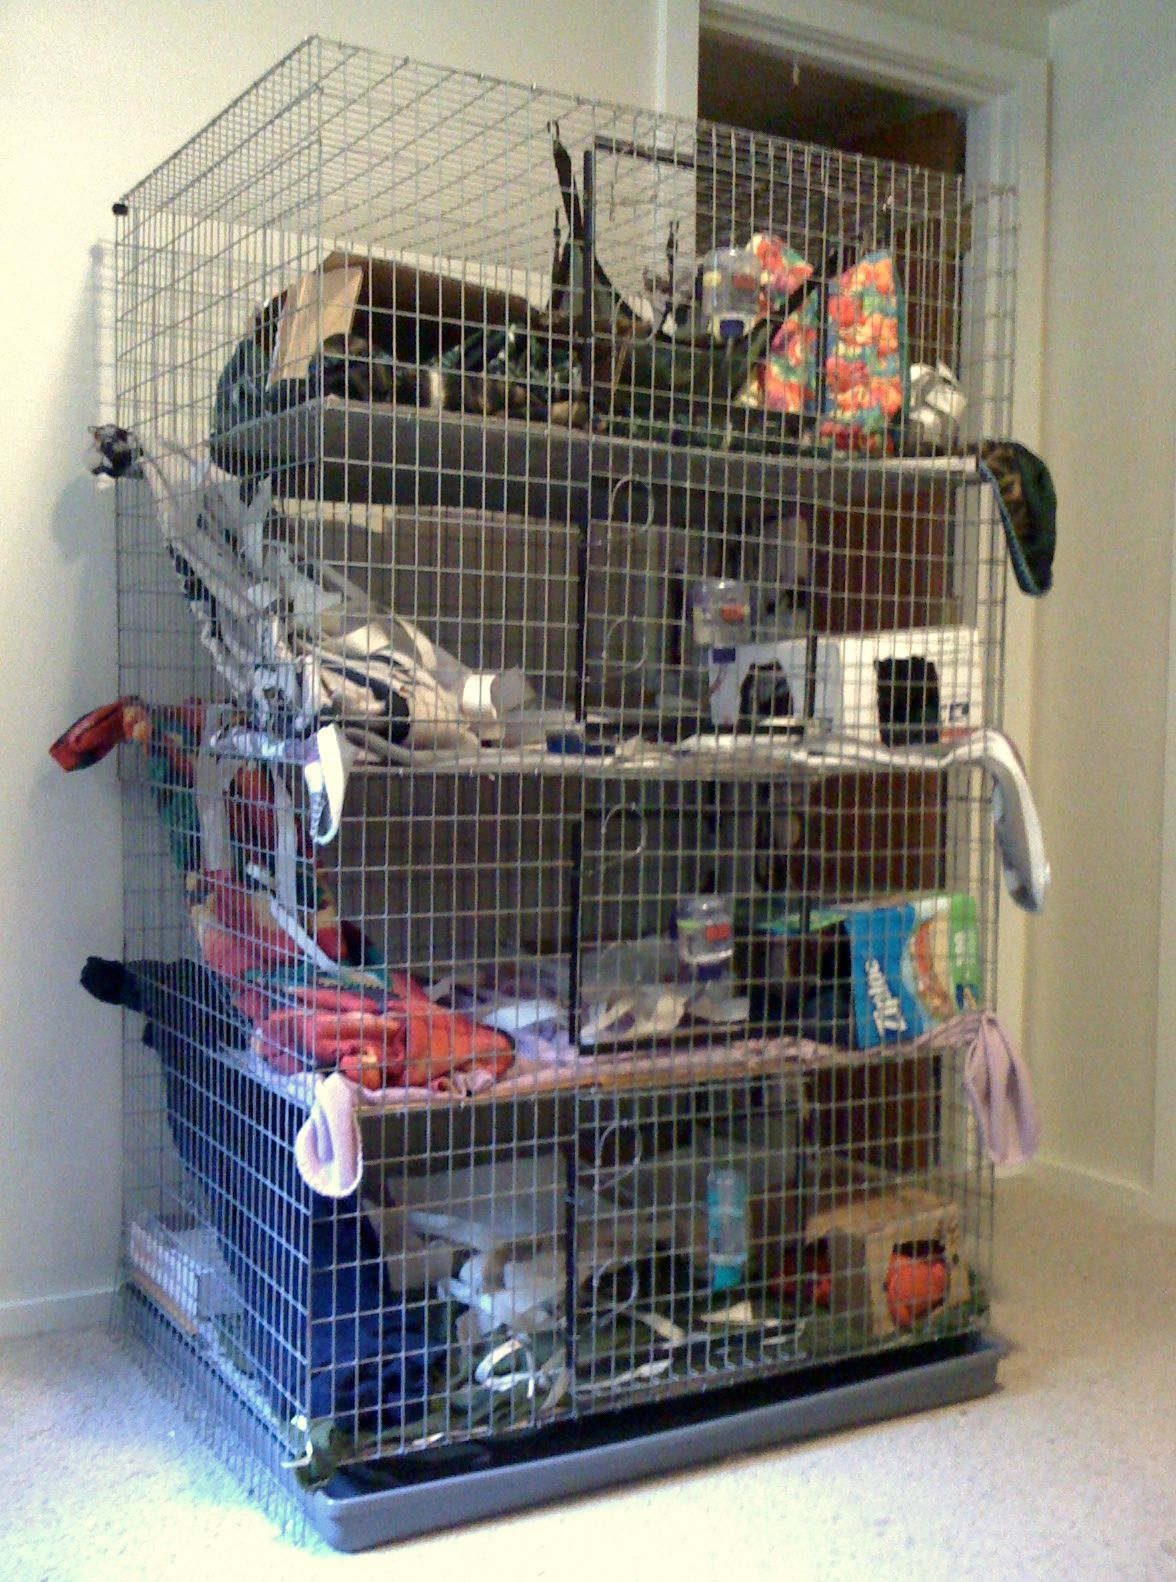 Wondrous Sweet Multi Level Rat Cage Definitely Going To Build Them Home Interior And Landscaping Ologienasavecom